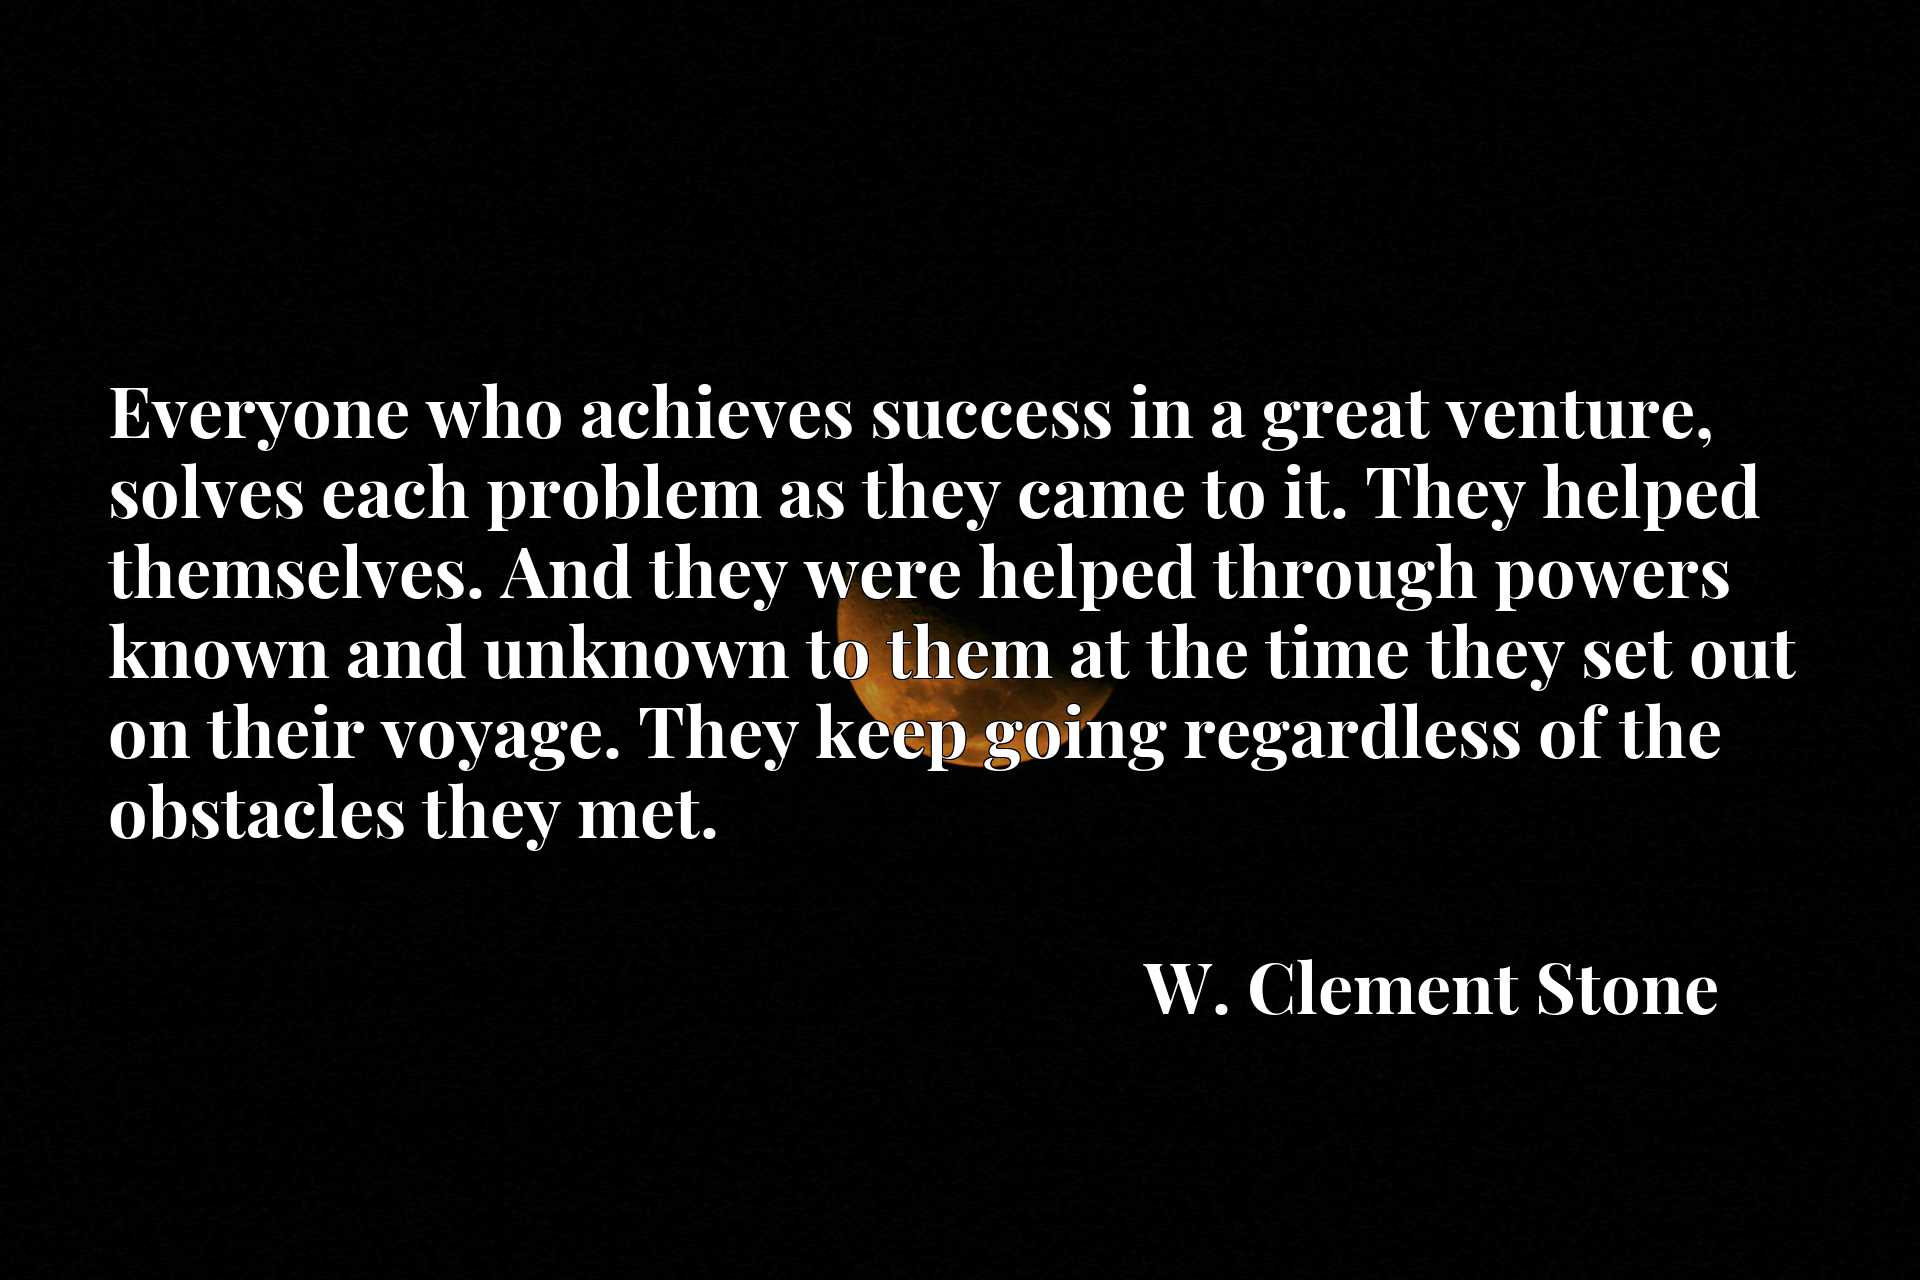 Everyone who achieves success in a great venture, solves each problem as they came to it. They helped themselves. And they were helped through powers known and unknown to them at the time they set out on their voyage. They keep going regardless of the obstacles they met.